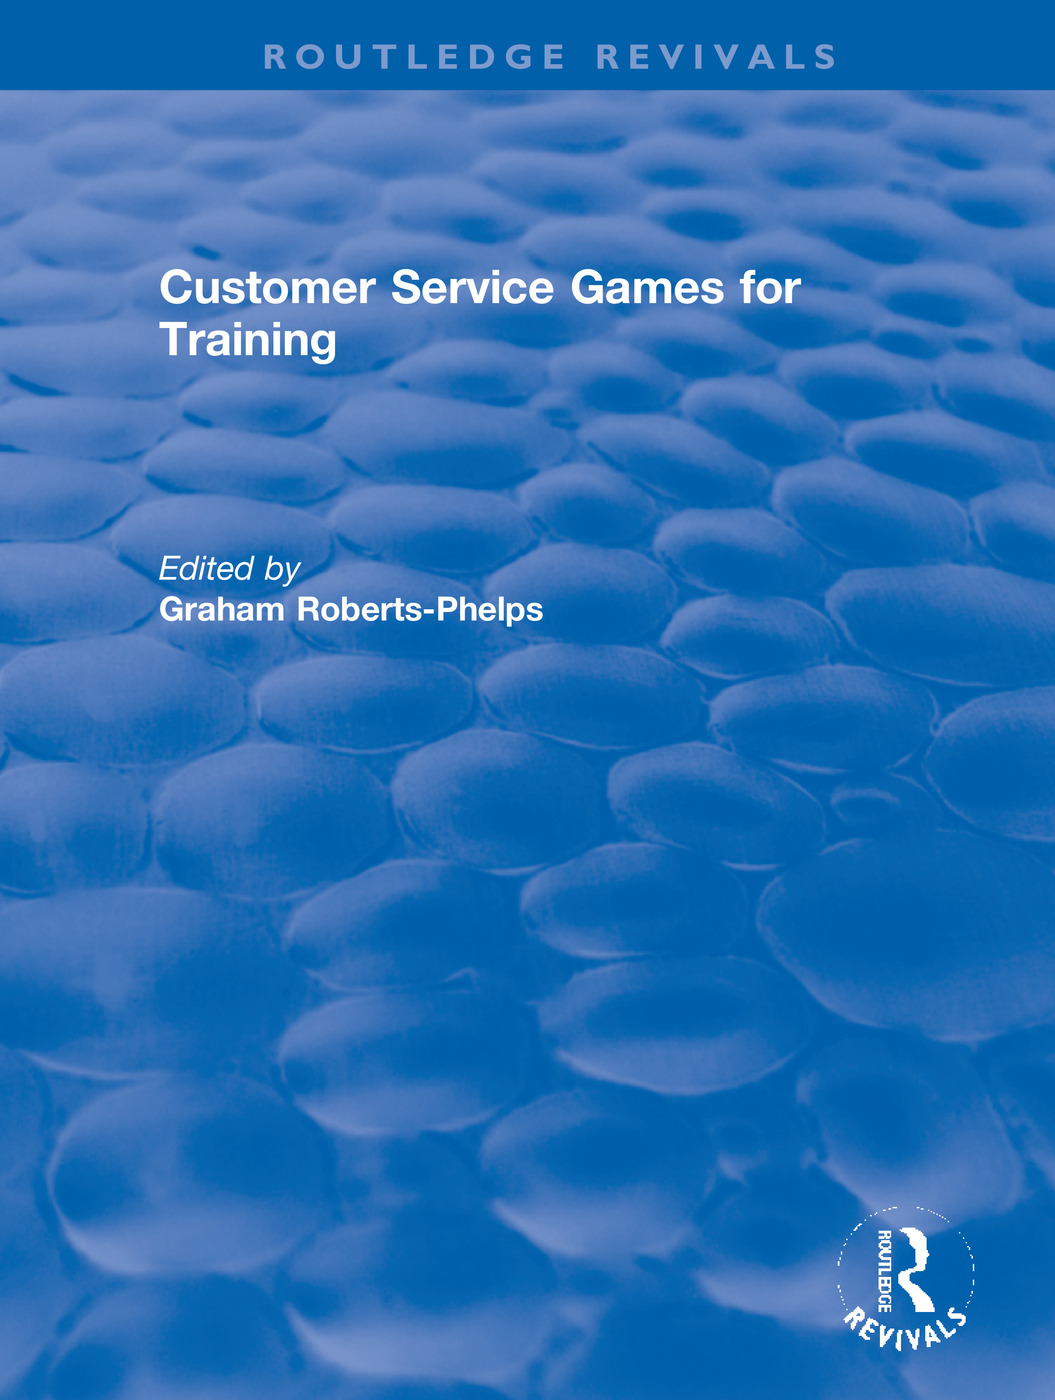 Customer Service Games for Training